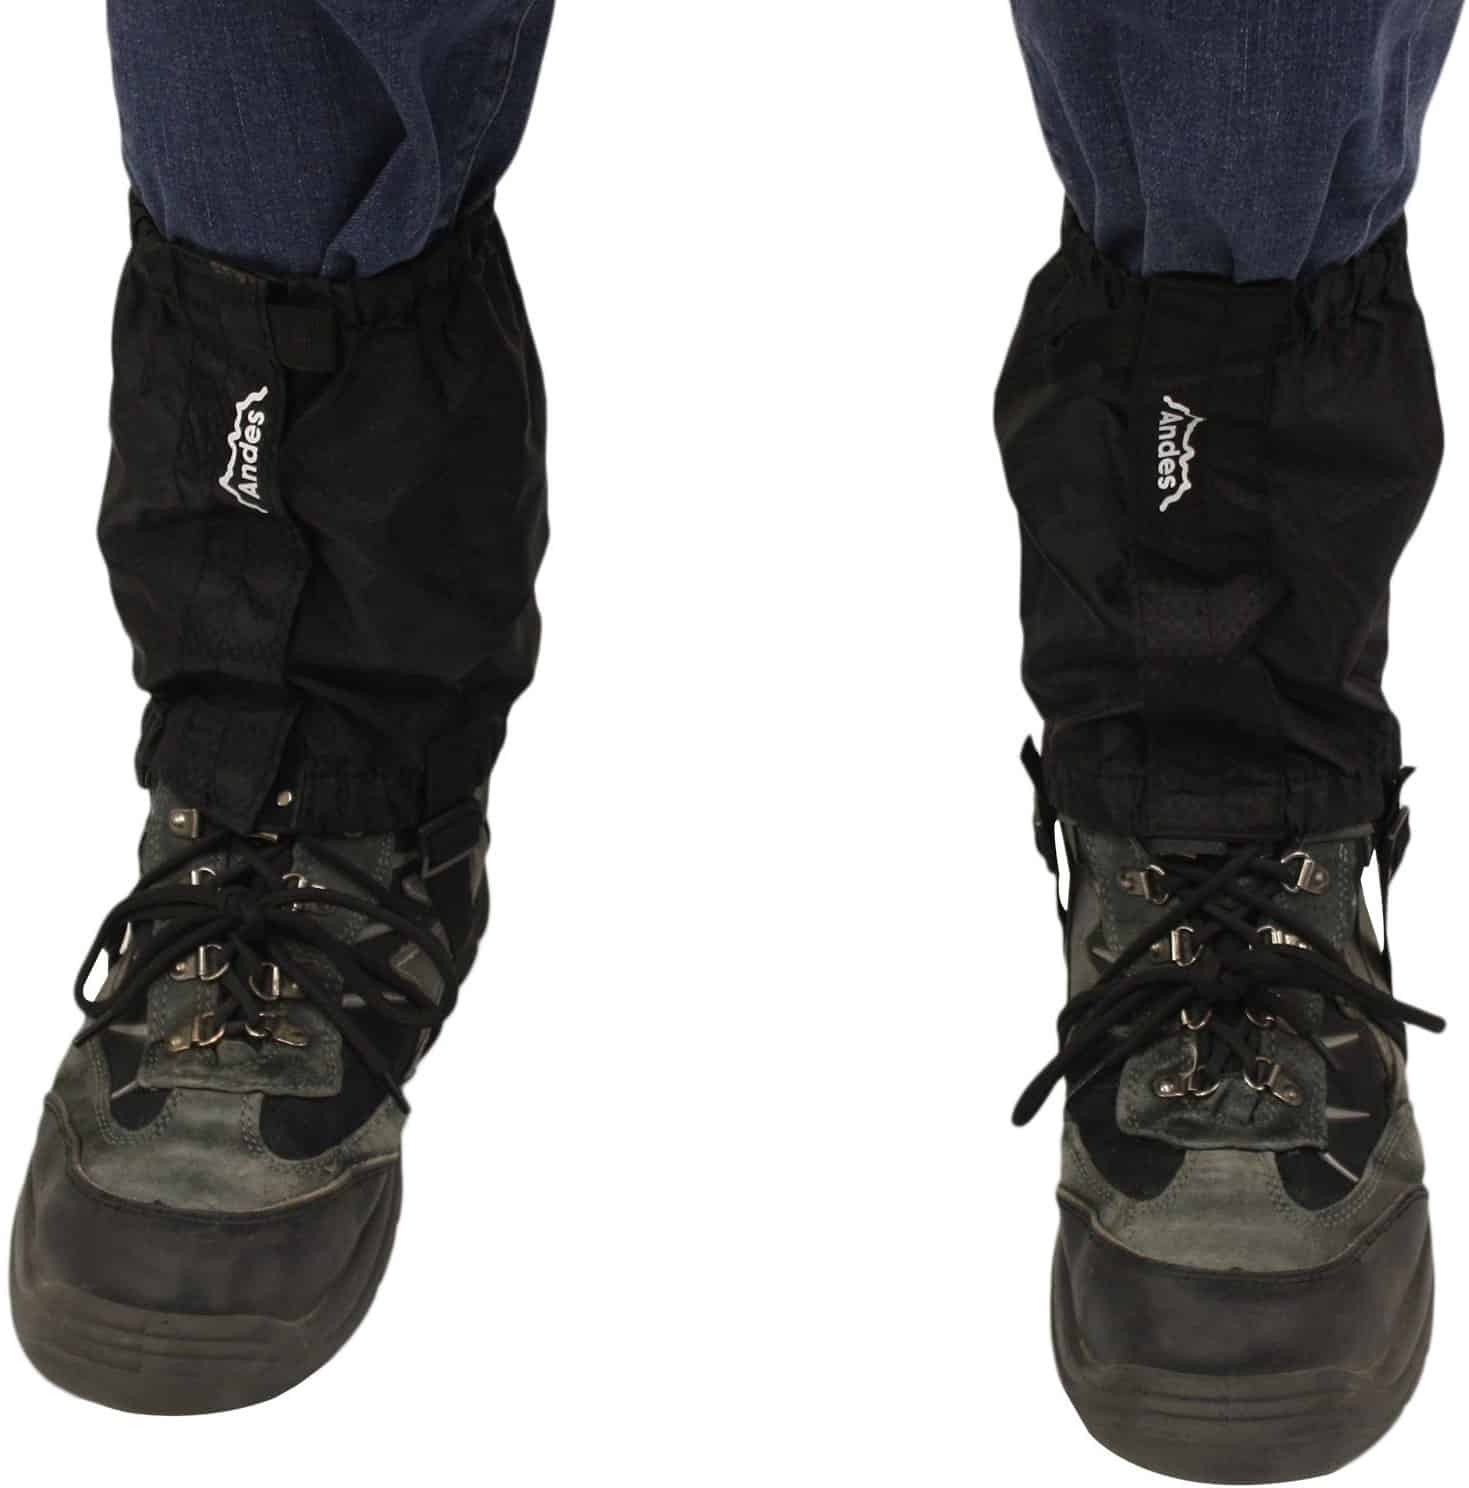 Andes Black Waterproof Outdoor Gaiters